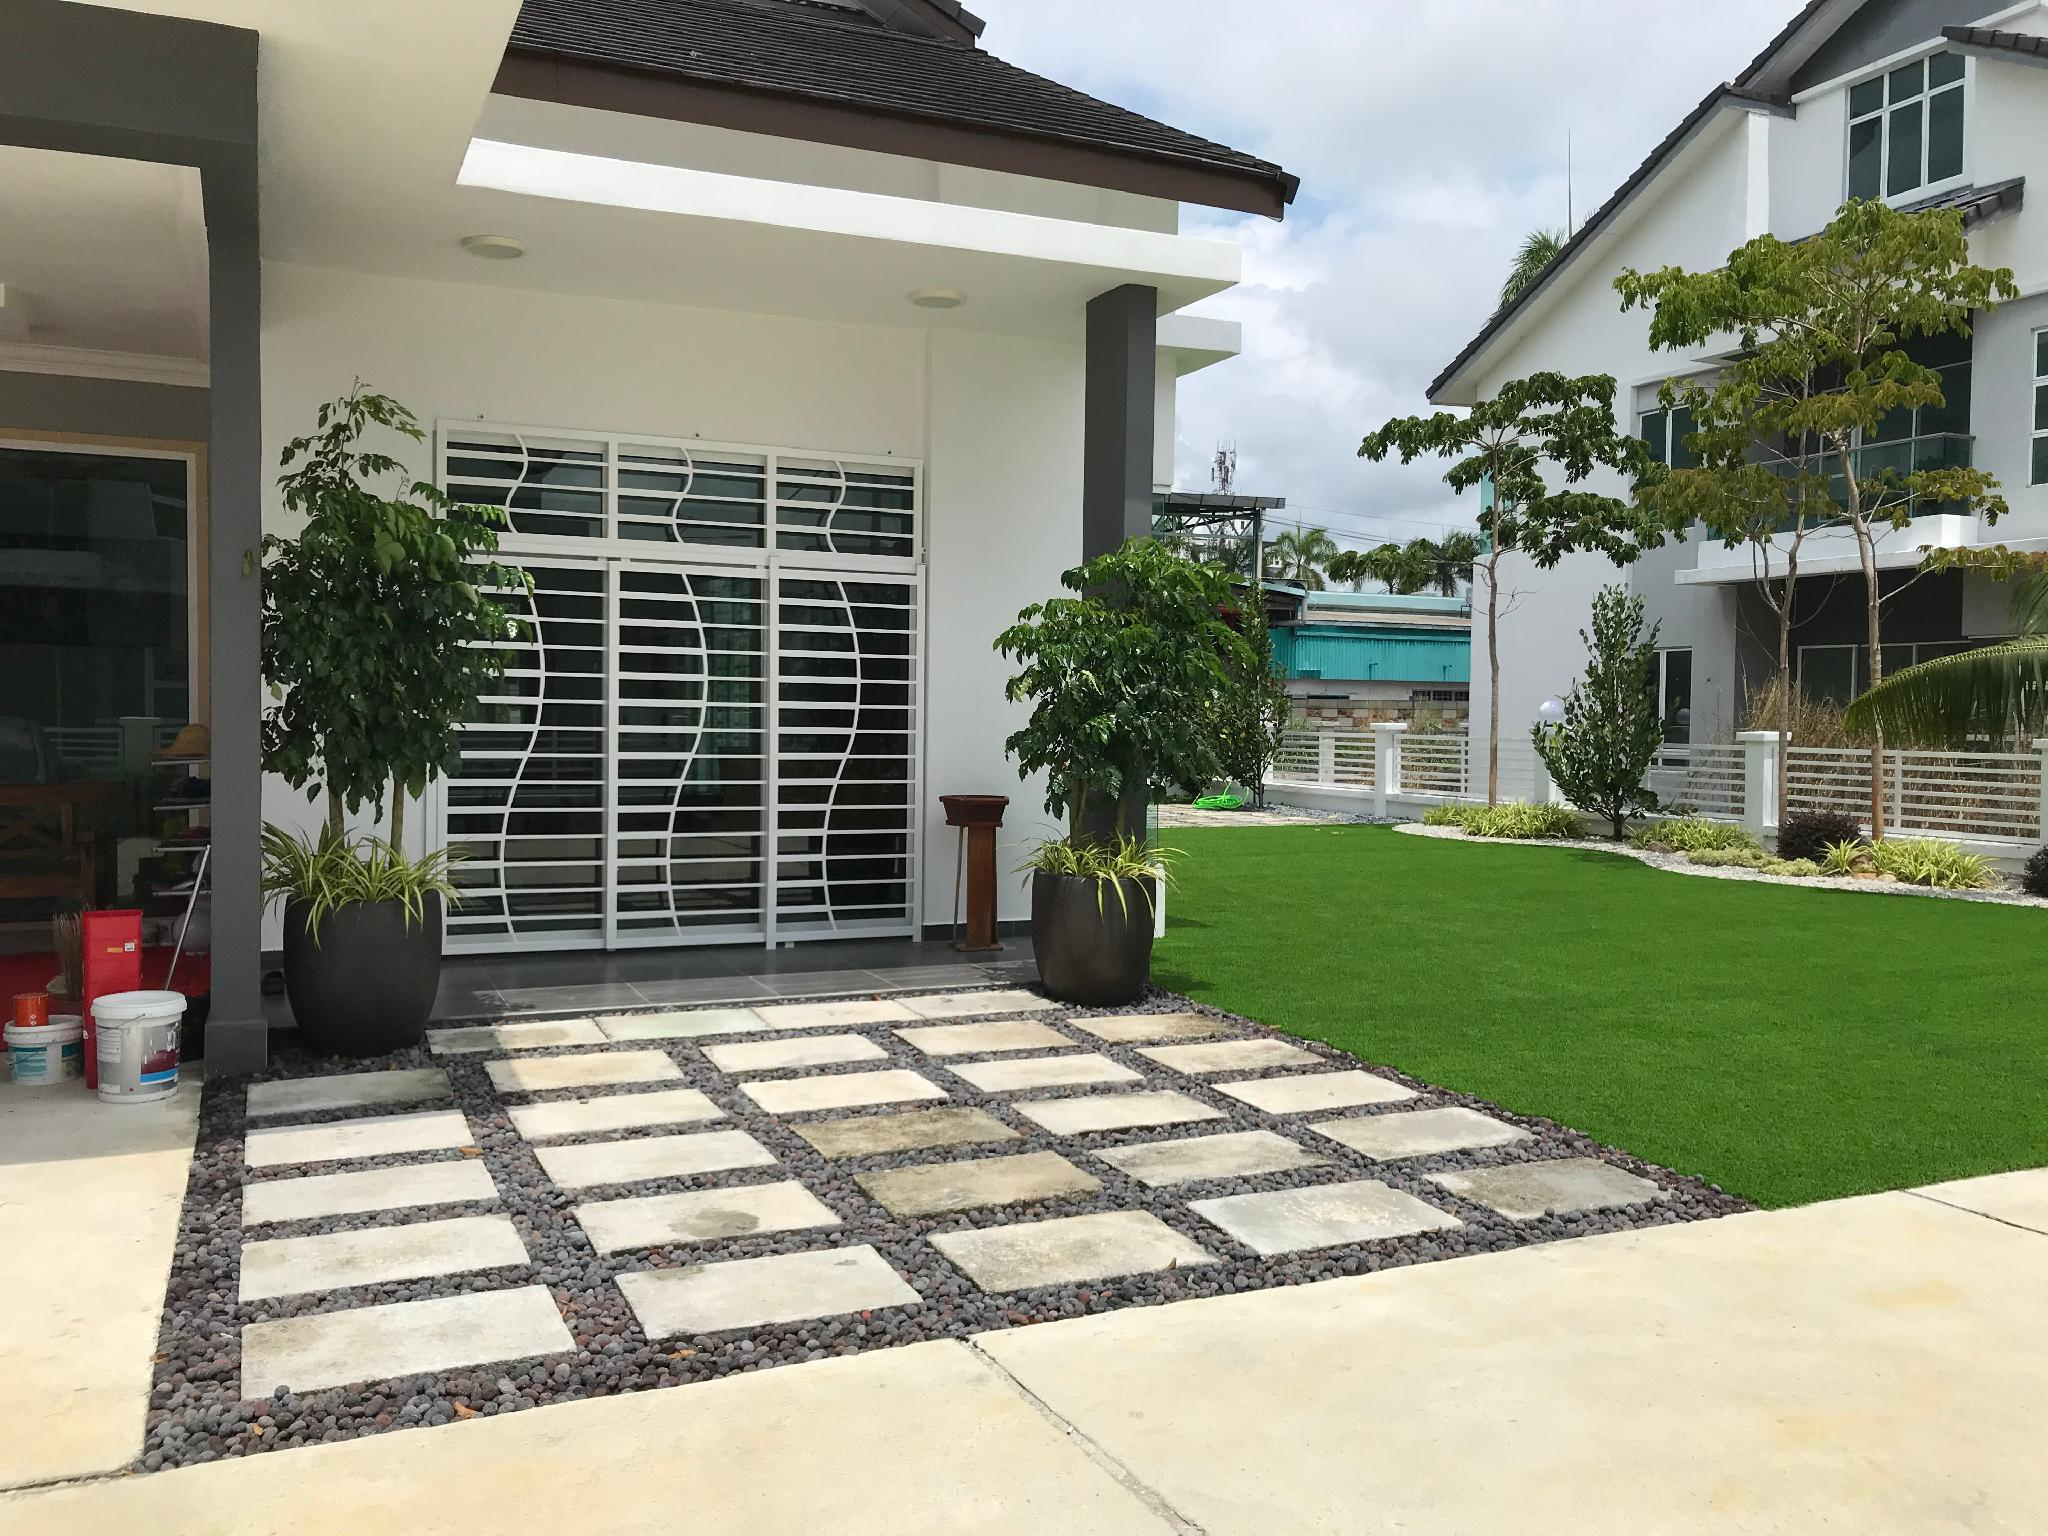 Sekinchan 6R 28 32Paxs With Private Swimming Pool